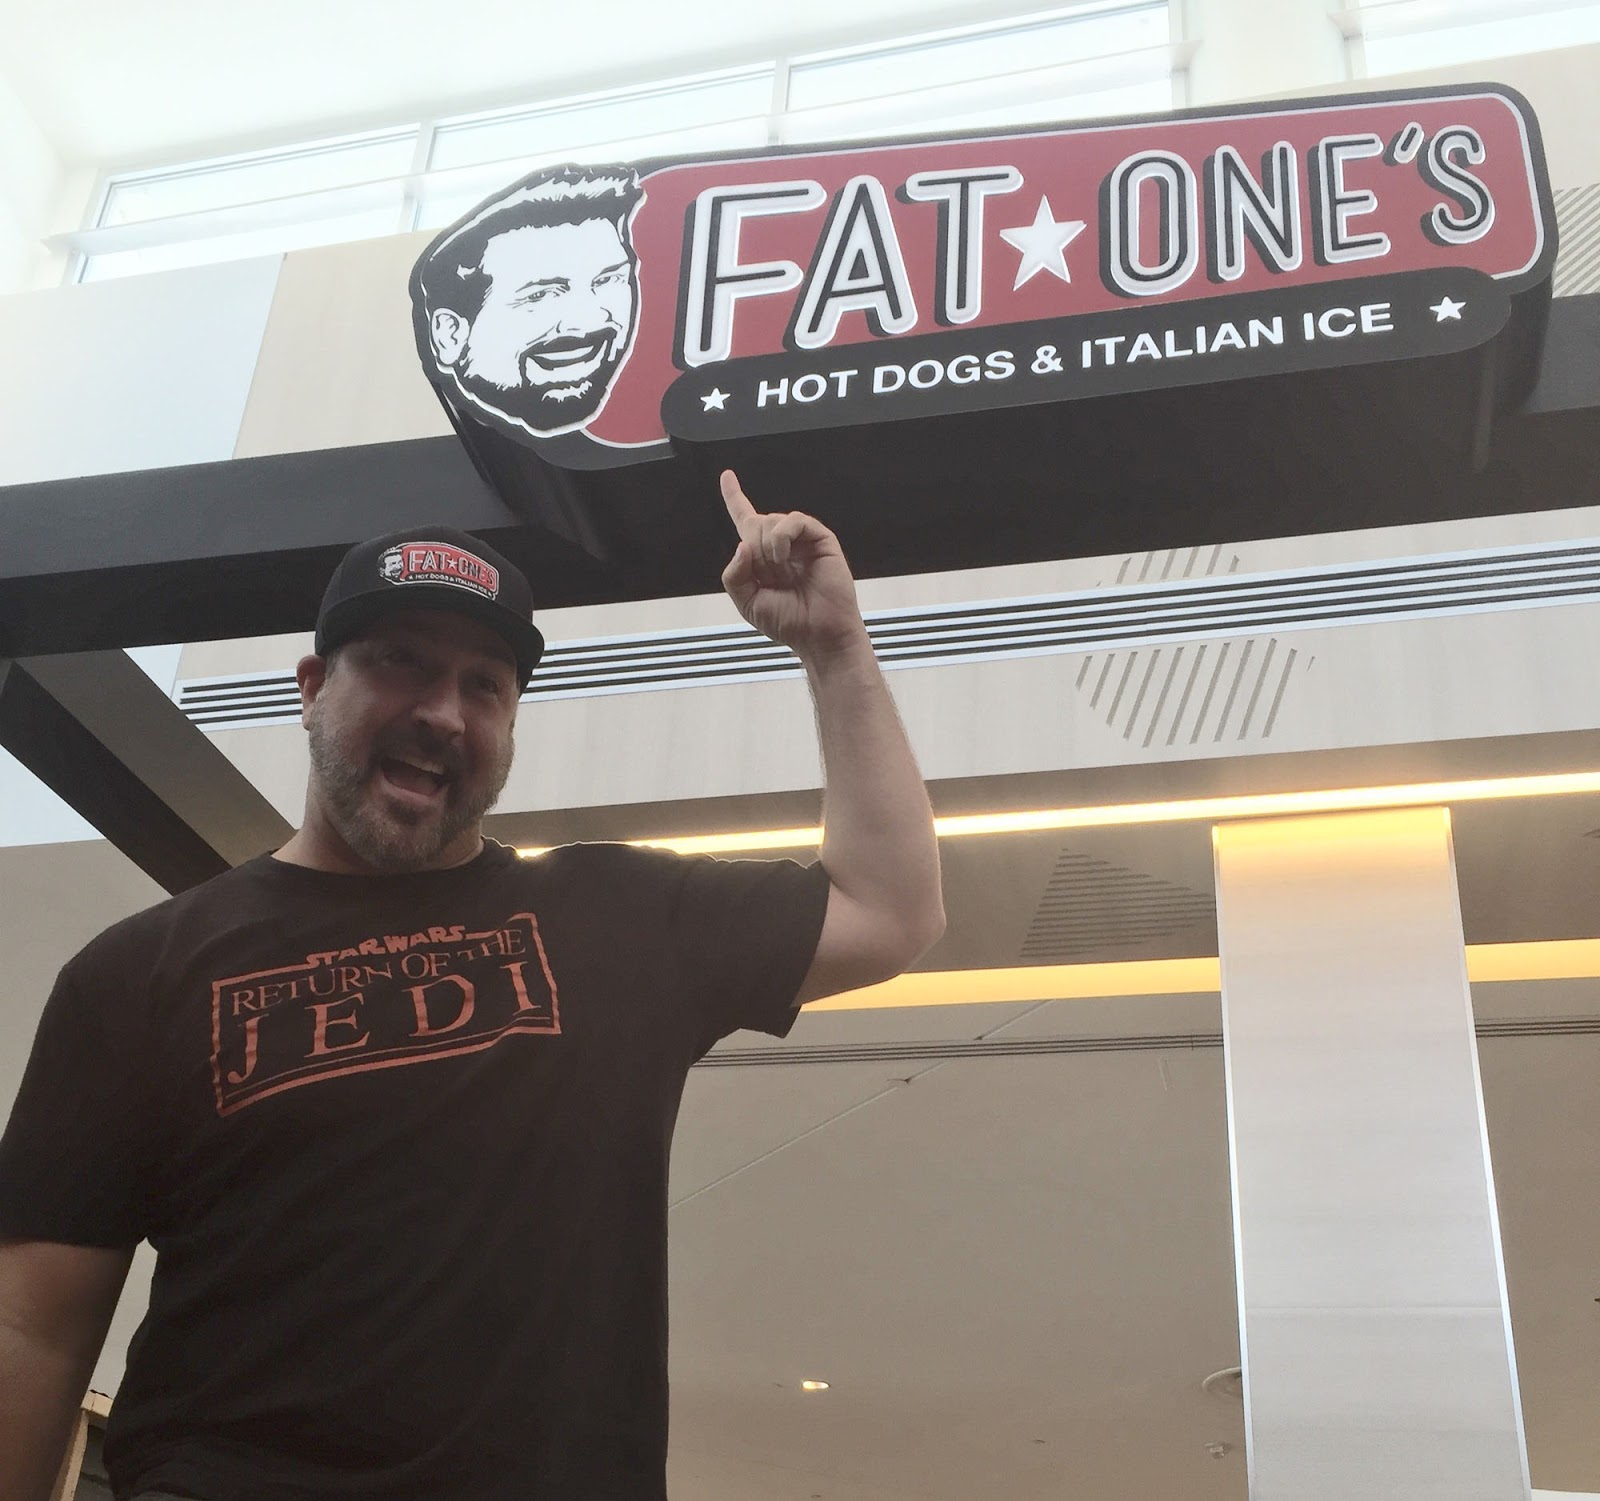 Fat one s the joey fatone hot dog stand at florida mall set to open